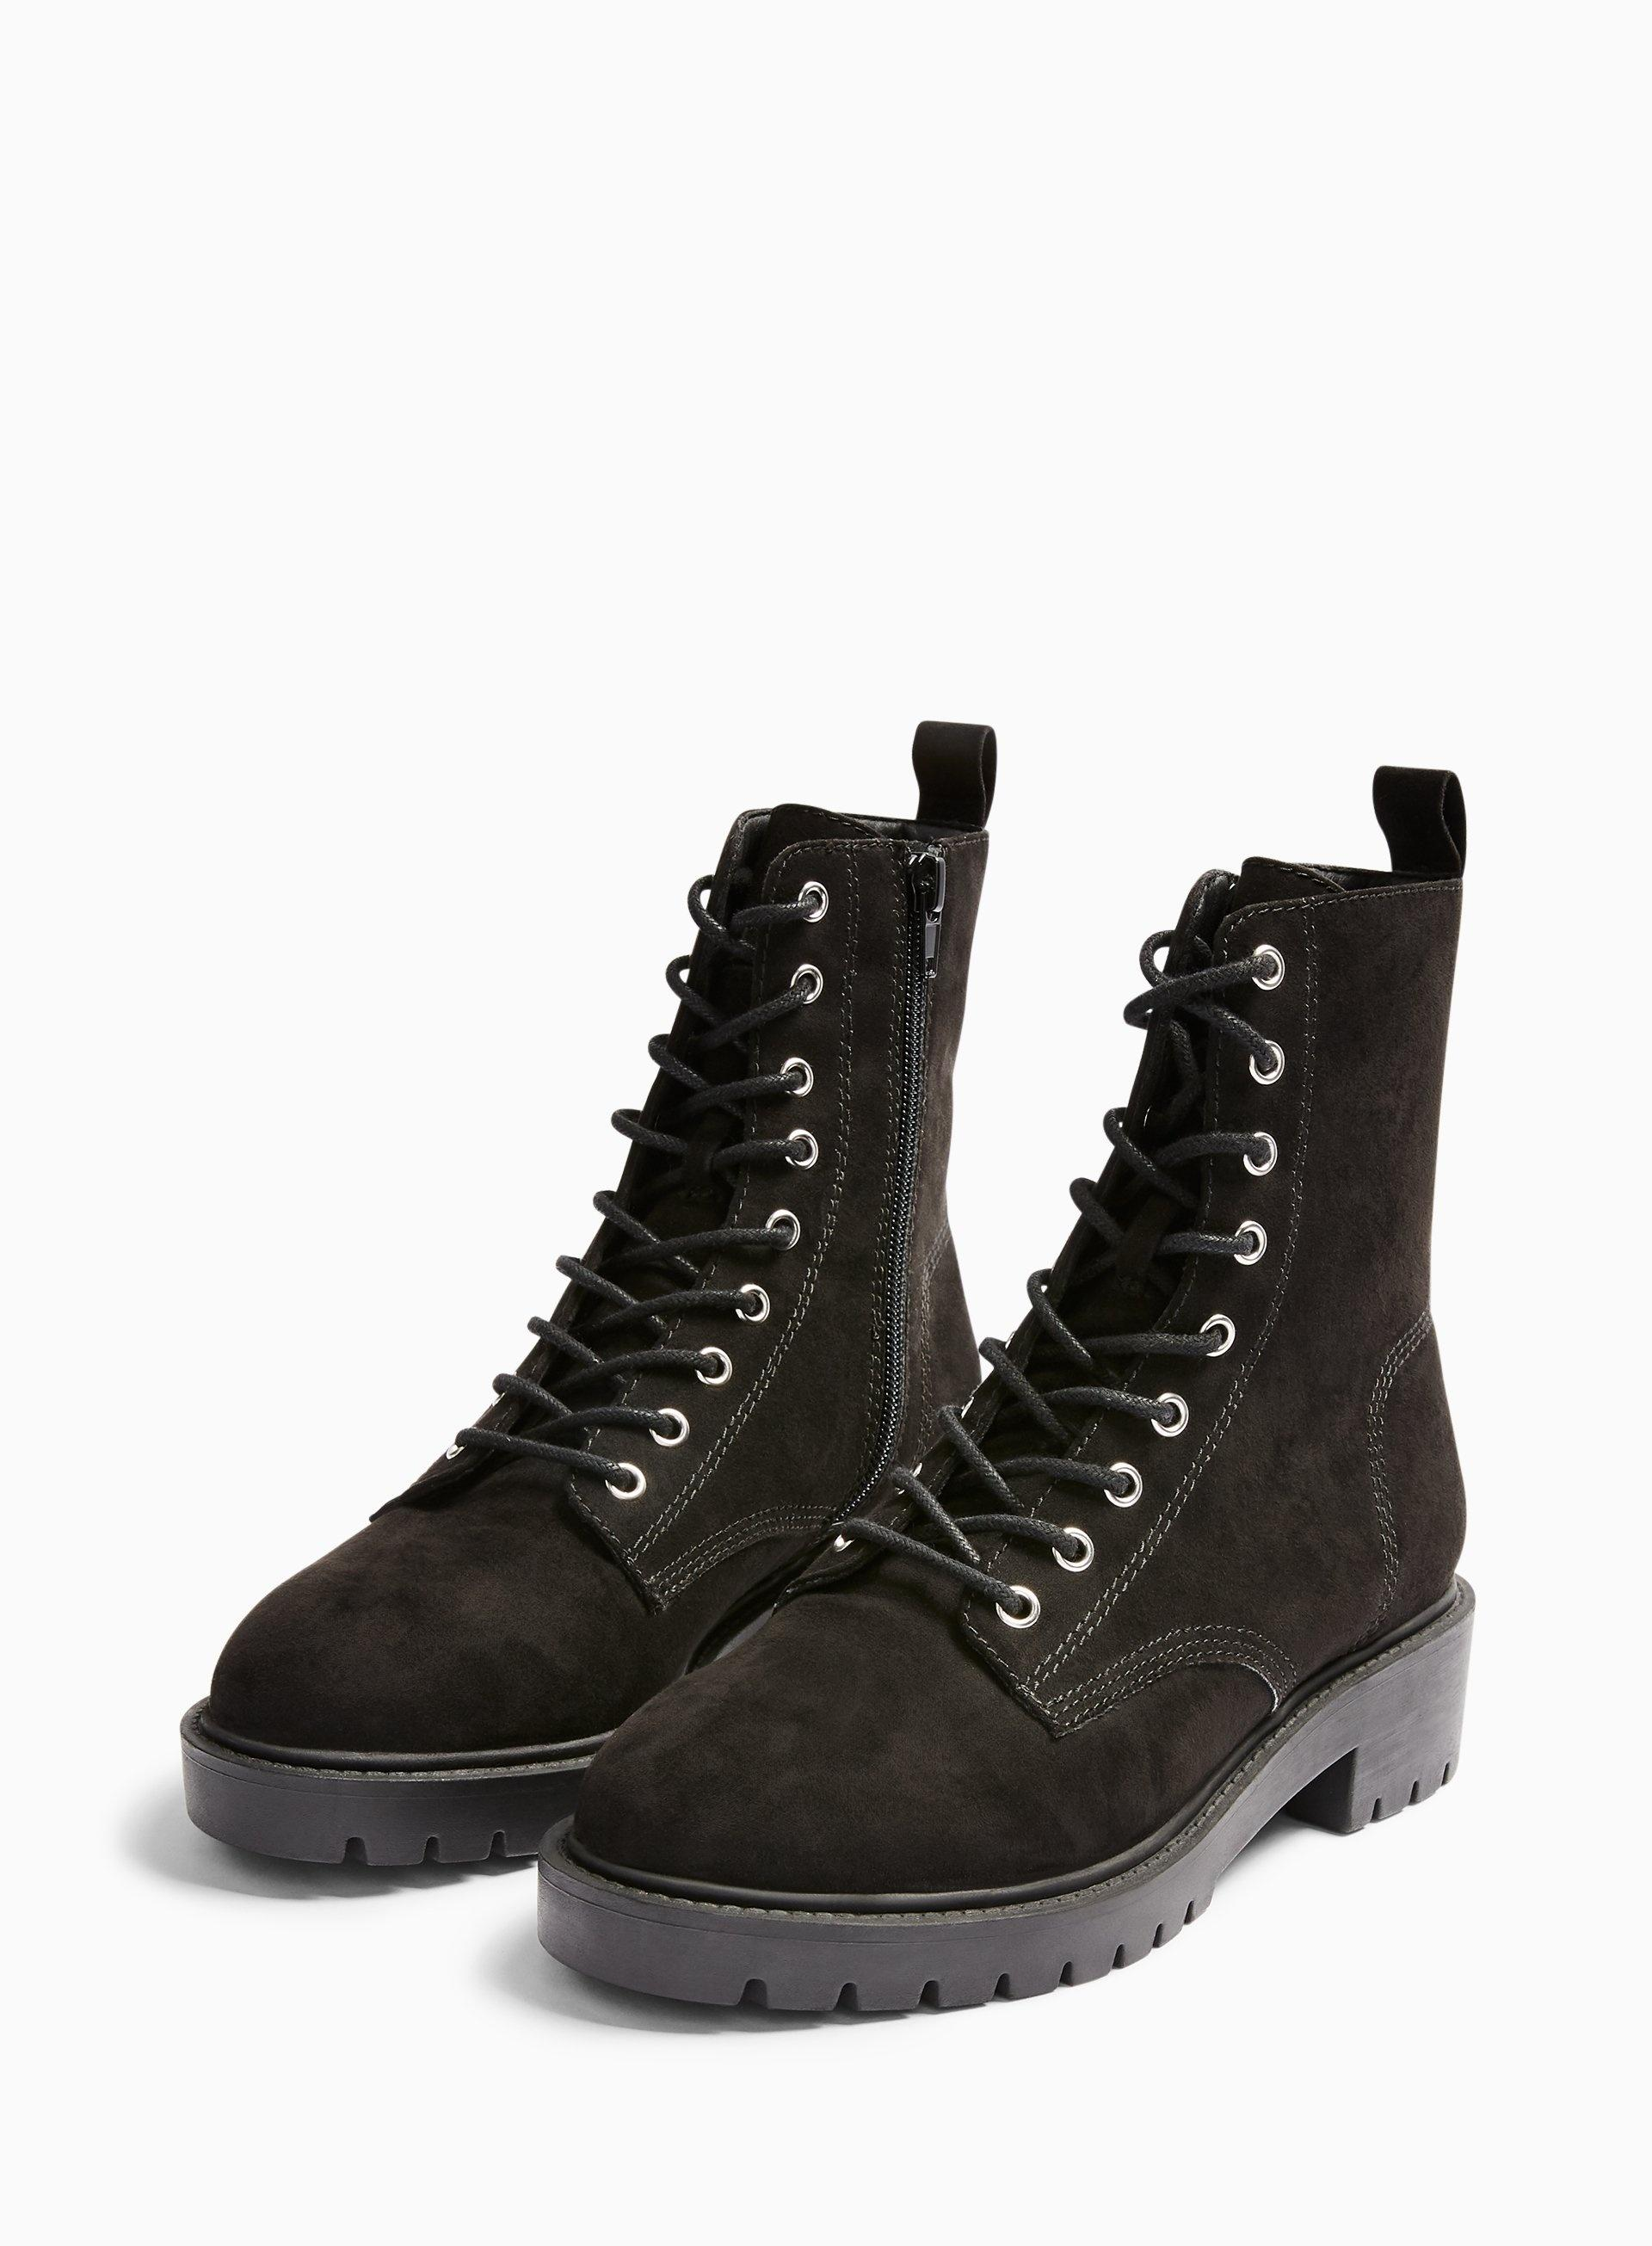 Black Lace Up Hiker Boots - Lyst